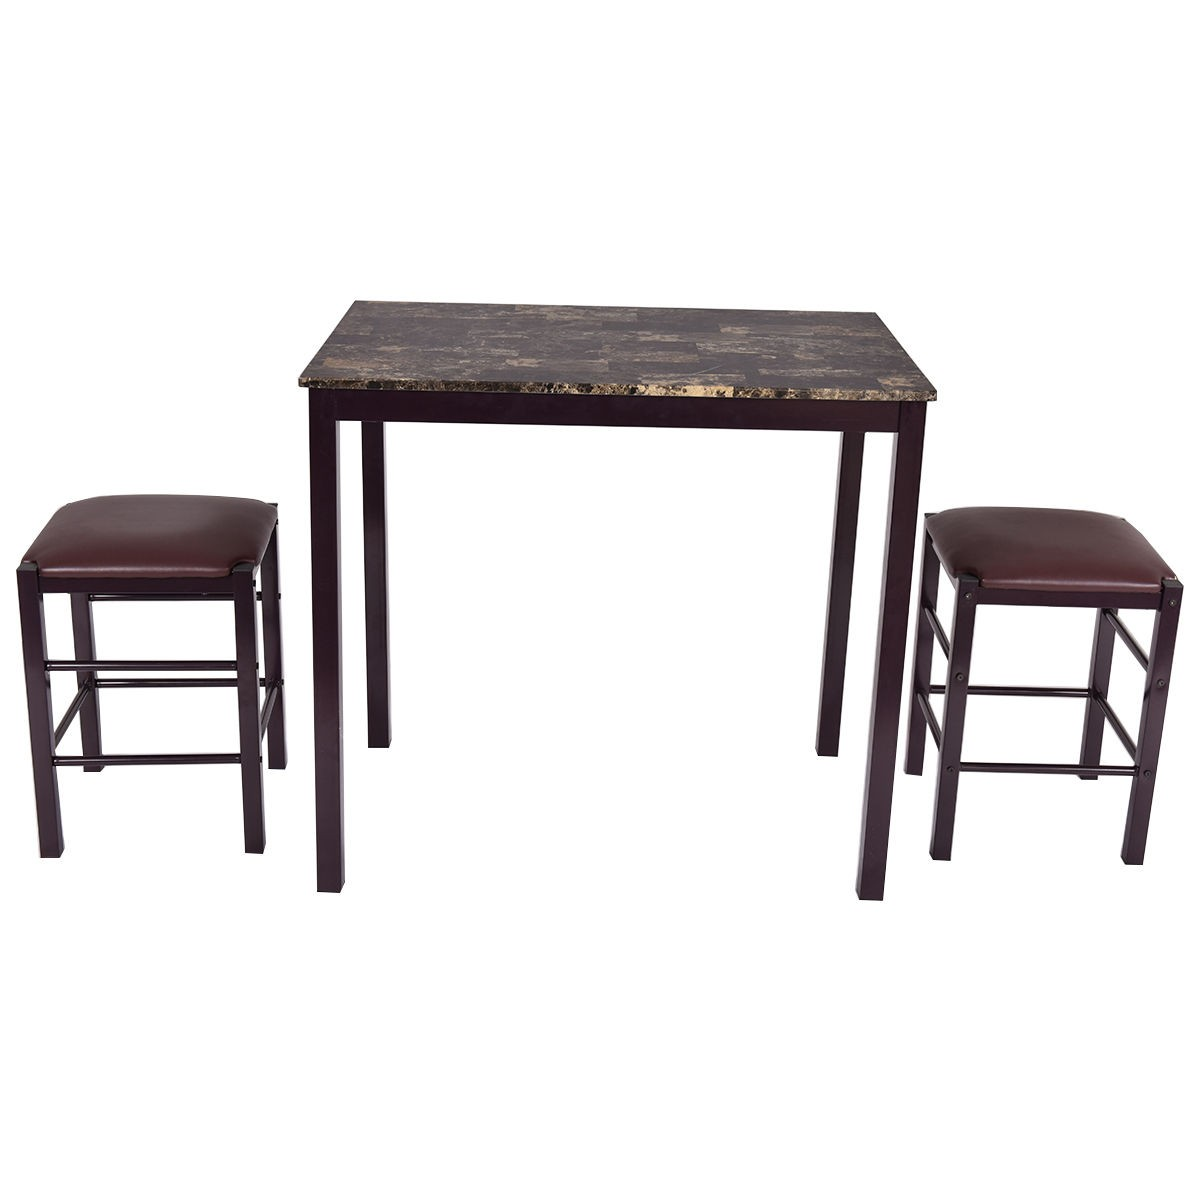 Bar Height Kitchen Table And Chairs 3 Pcs Dining Counter Height Set Faux Marble Table 2 Chairs